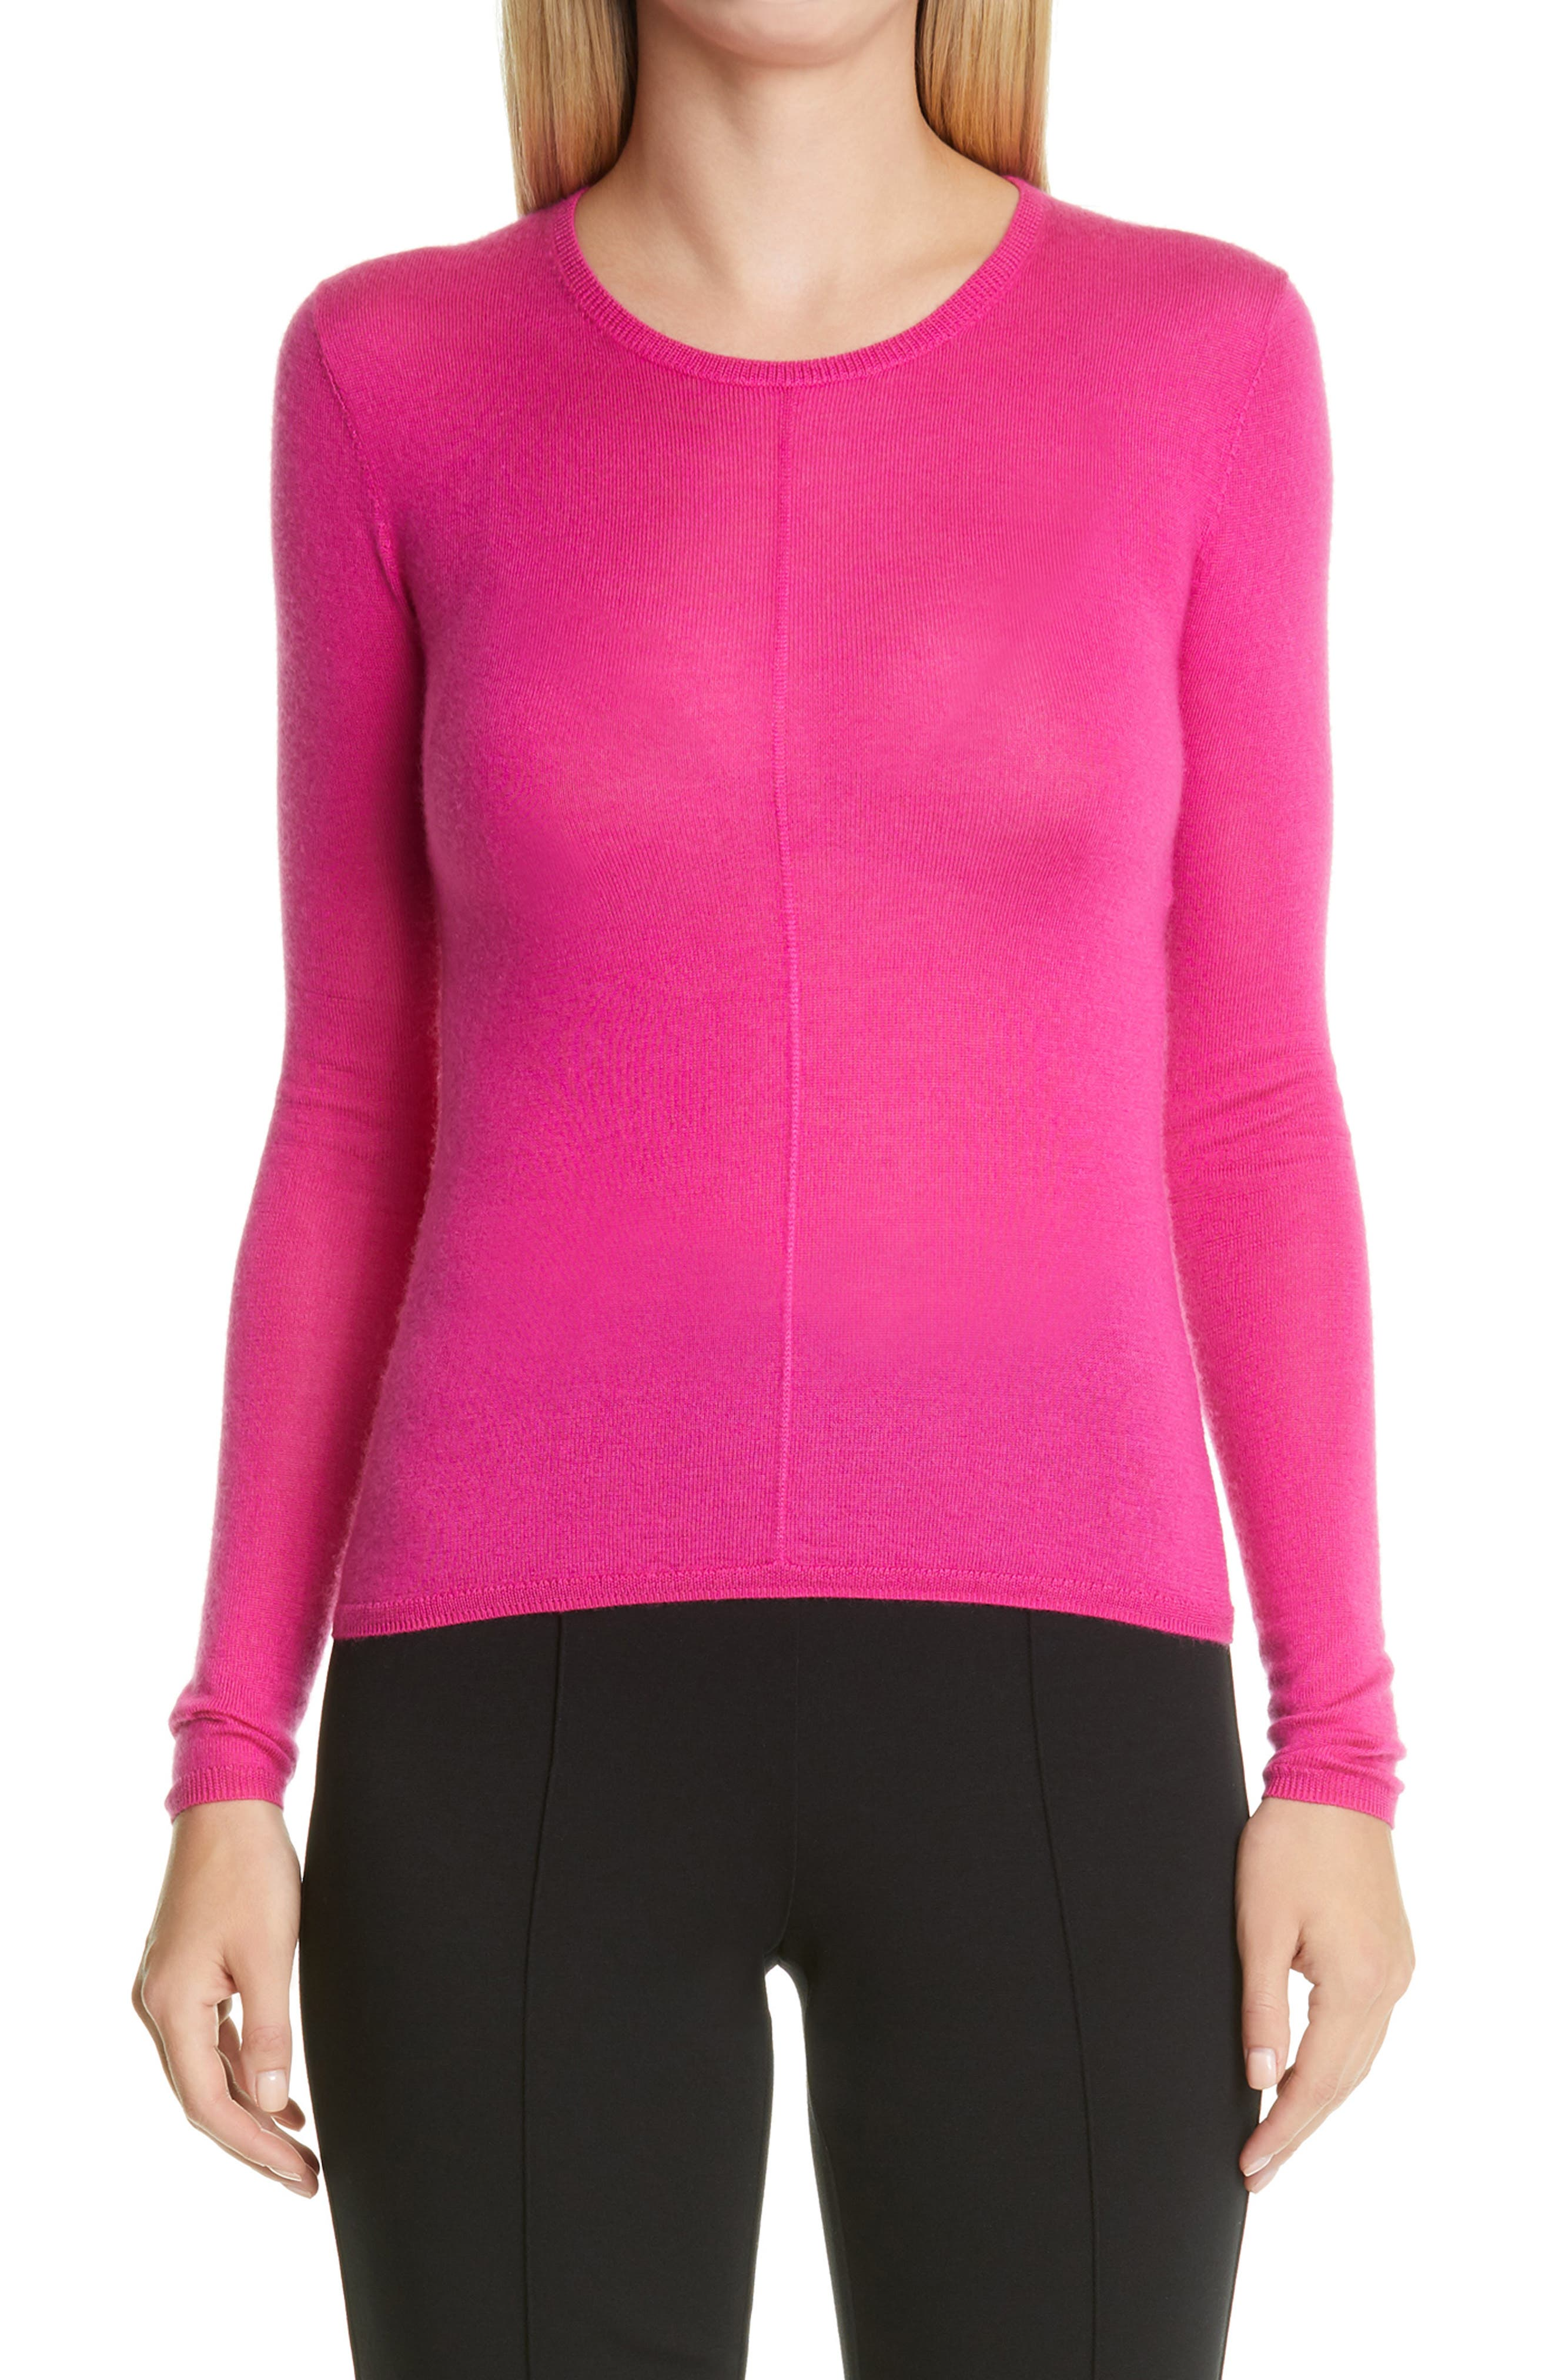 With a shapely fit streamlined by raised center seams, this slightly sheer sweater is knit from a supple cashmere-silk yarn dyed in a vivacious pink hue. Style Name: St. John Collection Cashmere & Silk Sweater. Style Number: 6106759. Available in stores.